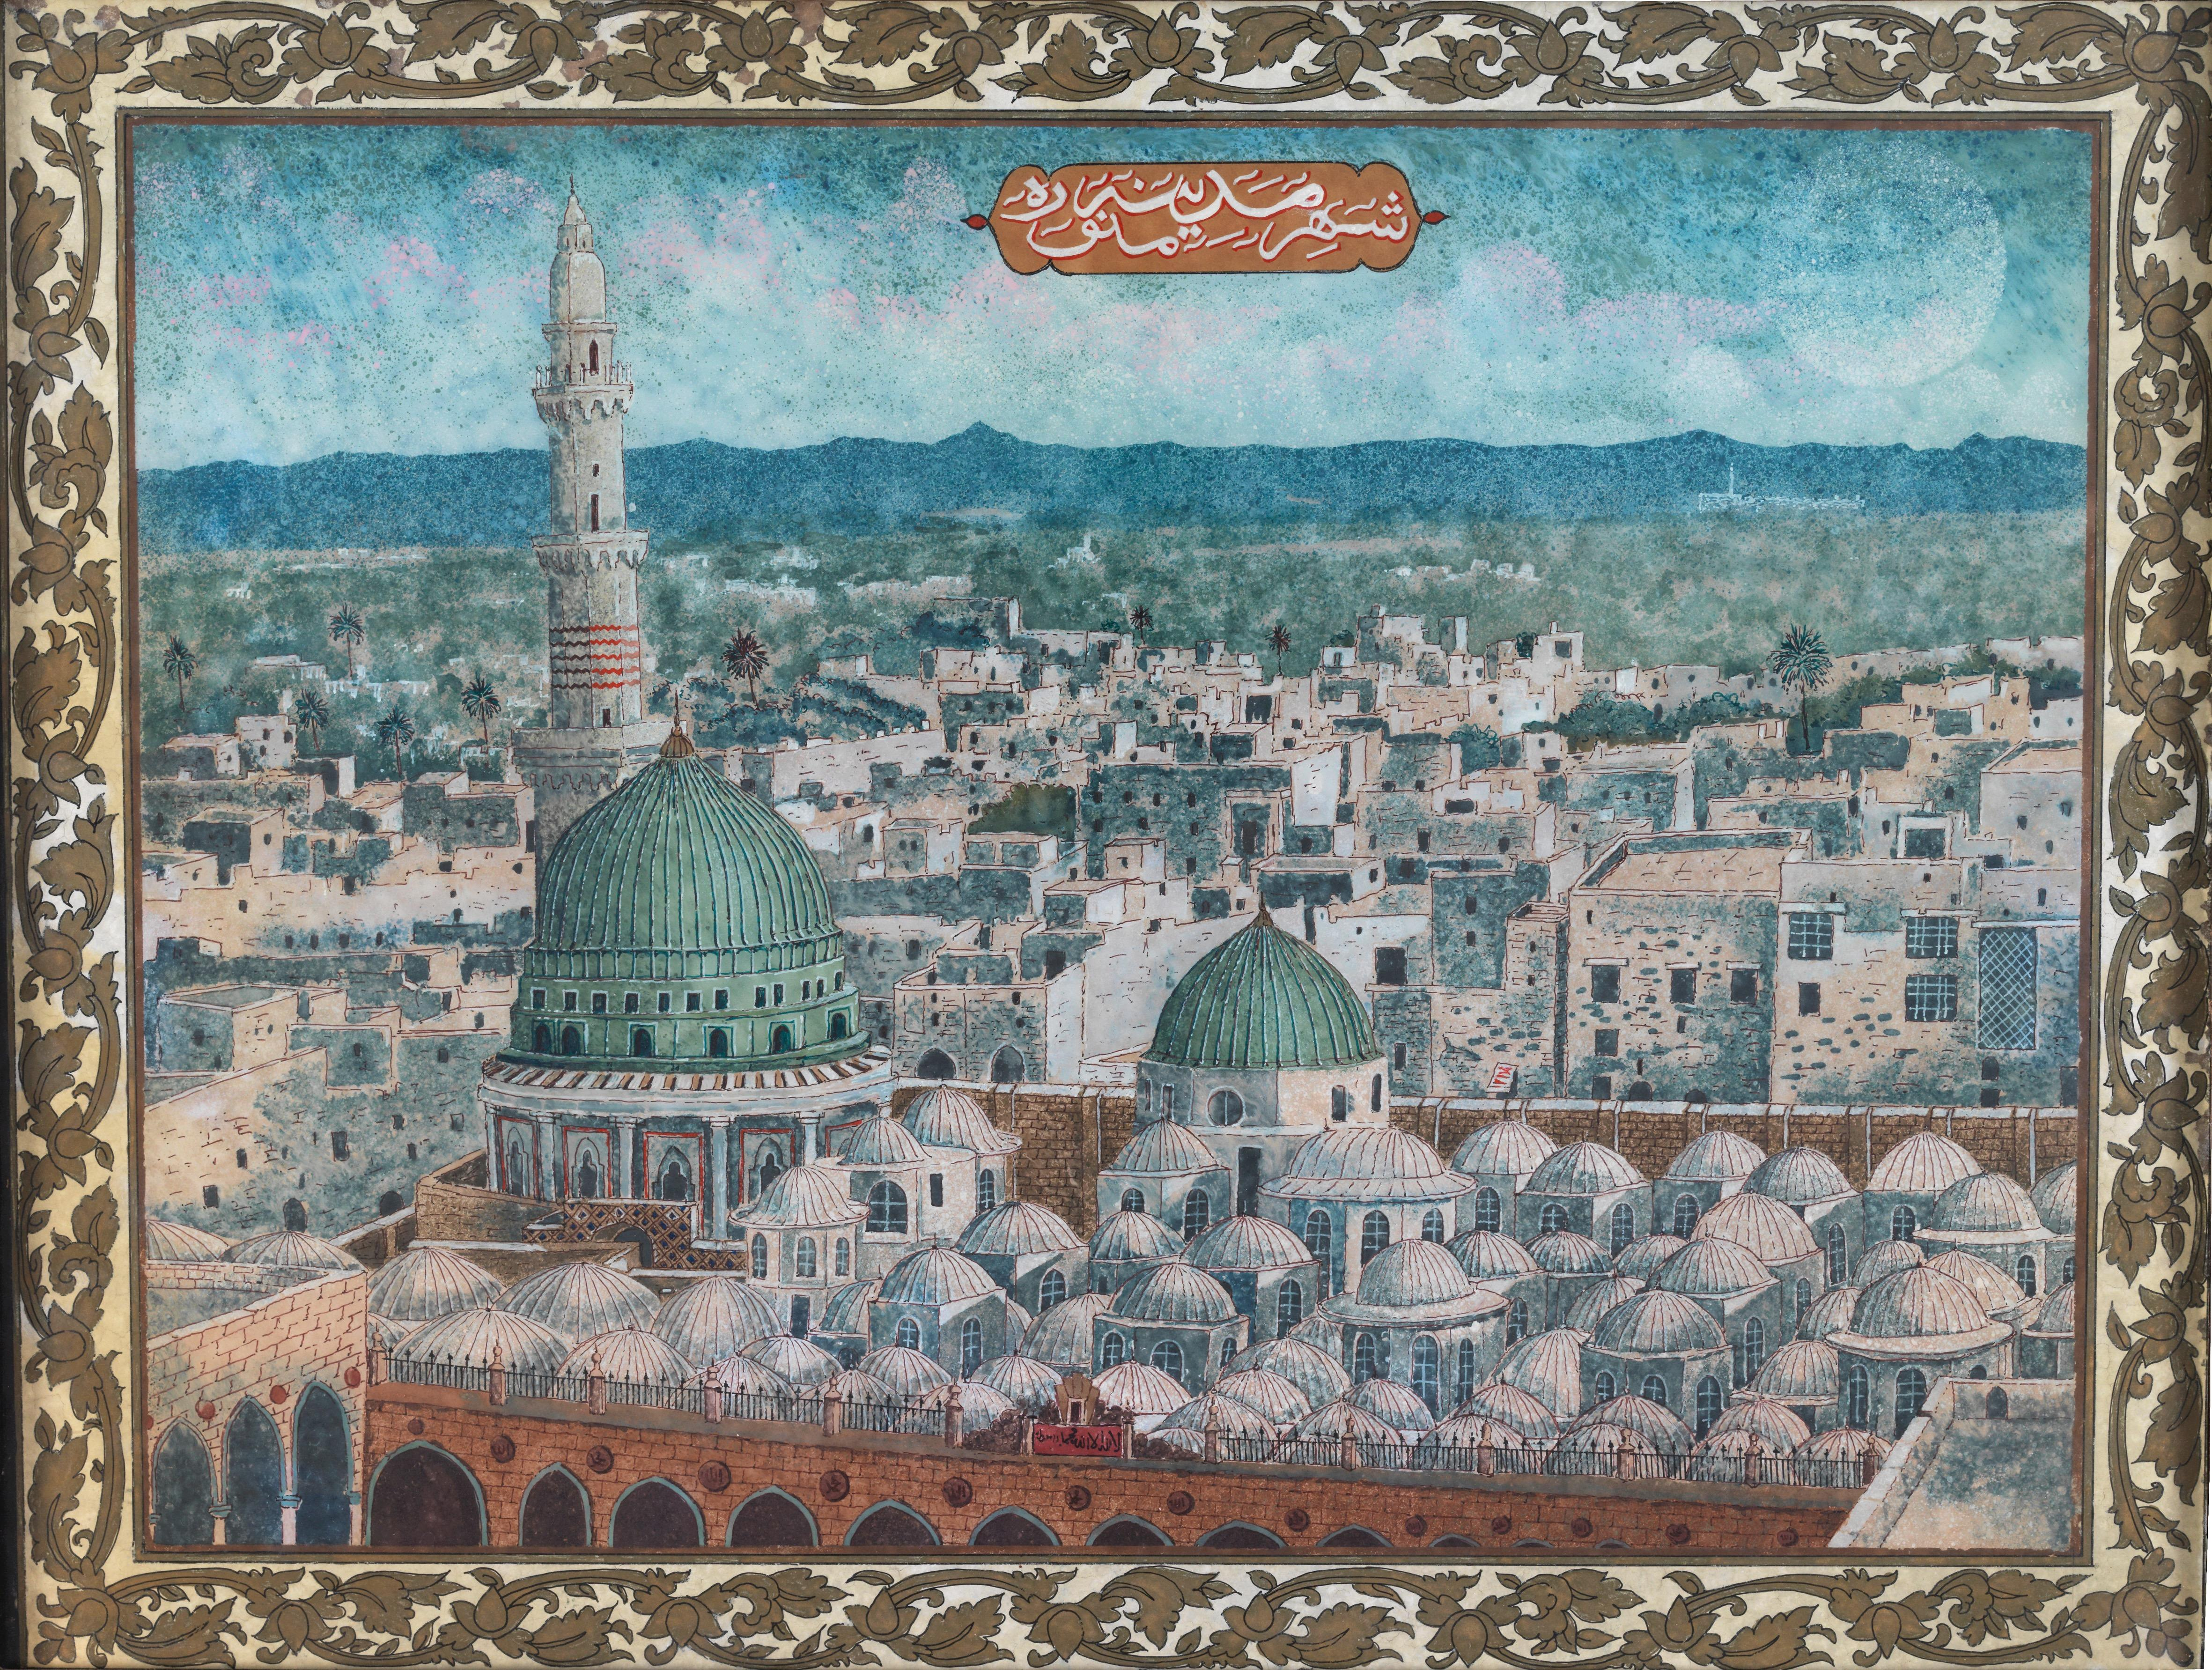 Reverse-glass painting, with a general view of Medina